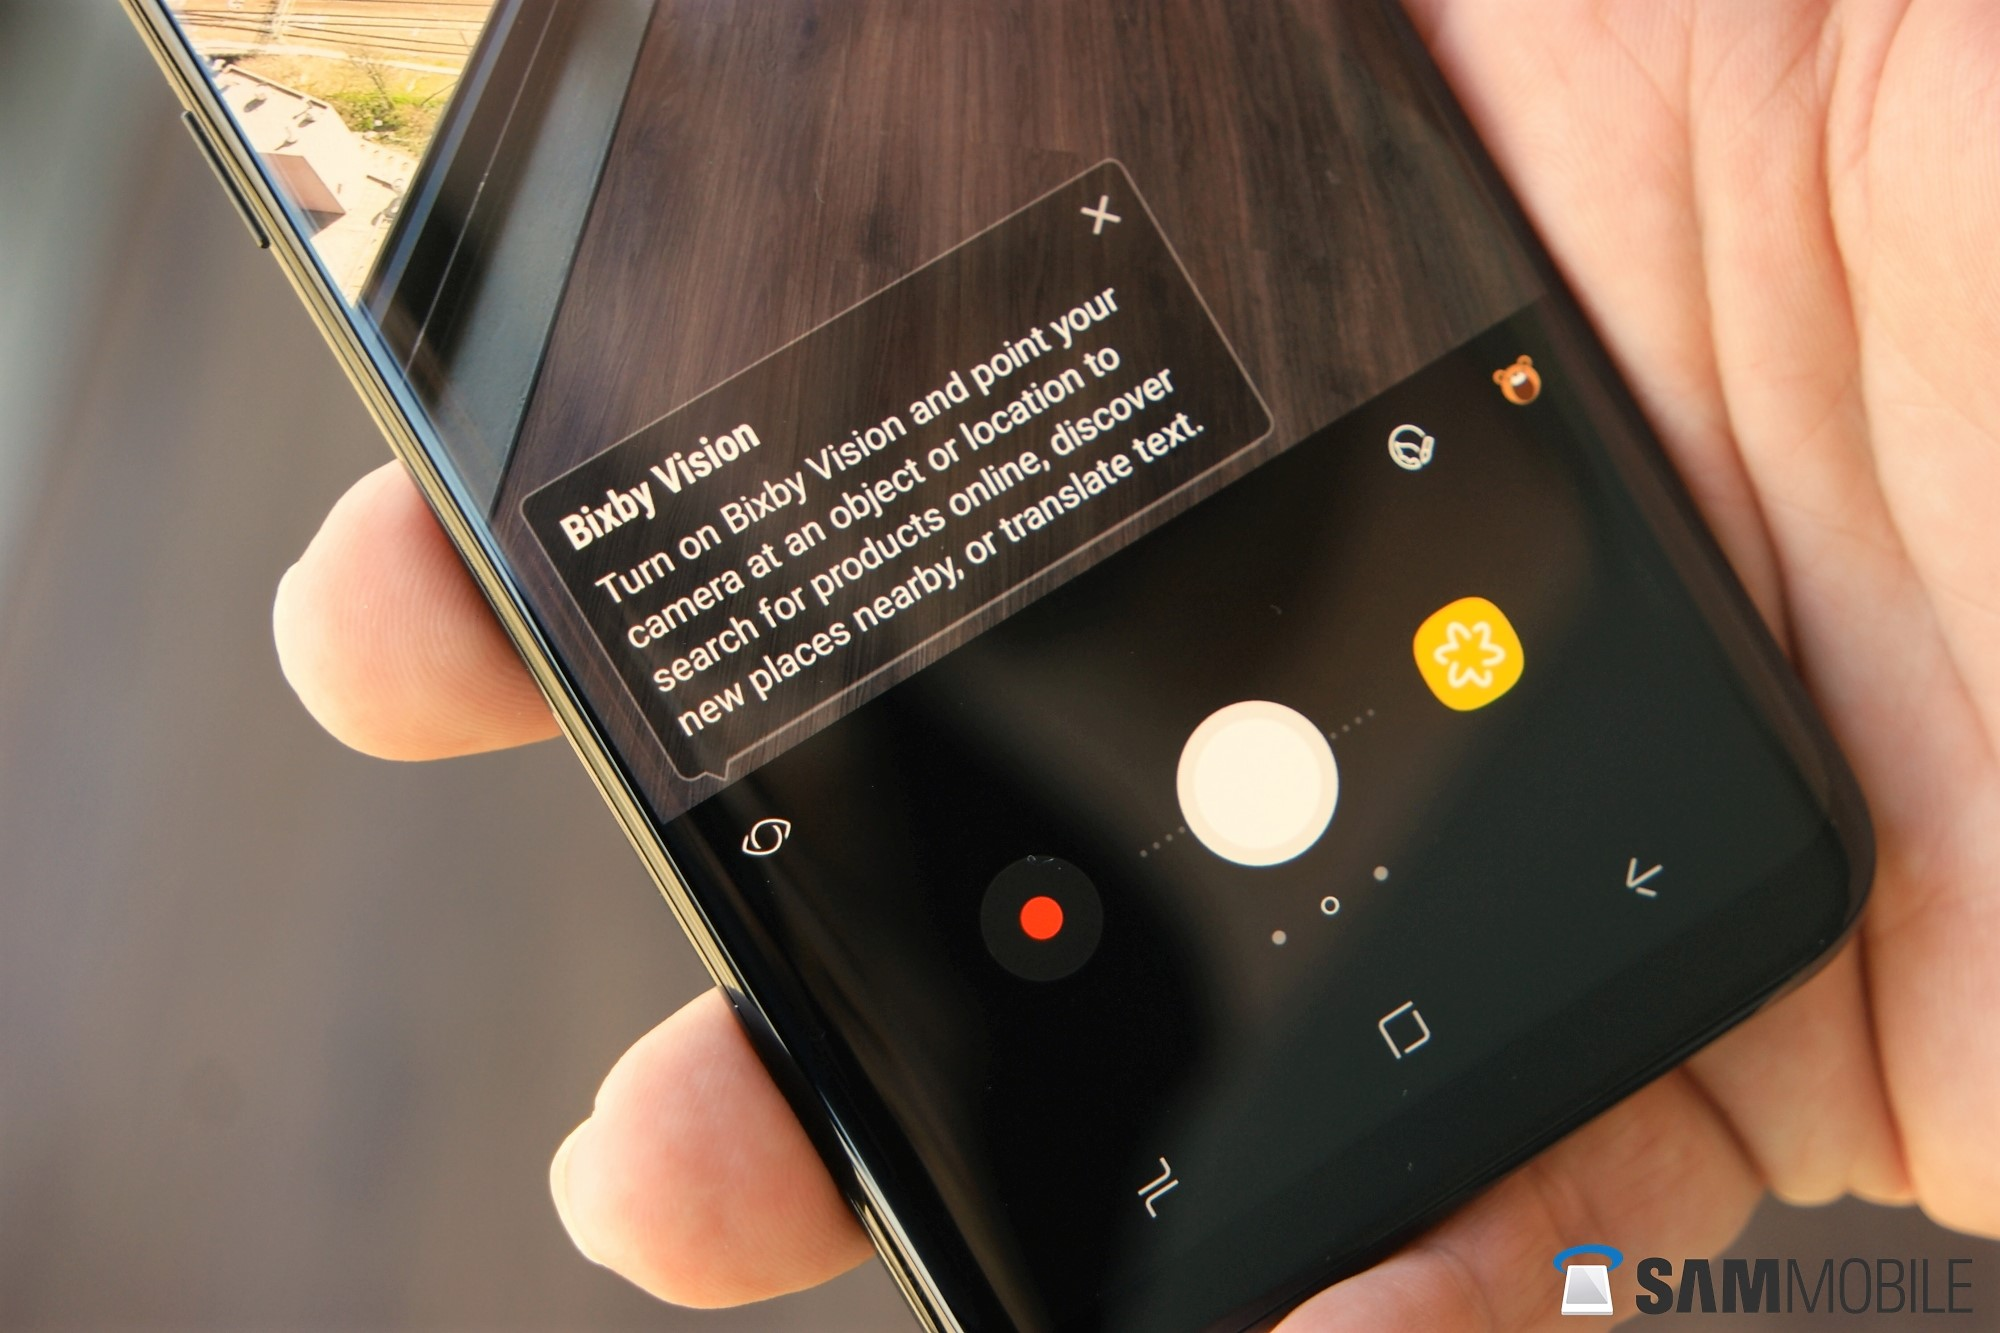 This is what Bixby can do on the Galaxy S8 - SamMobile - SamMobile